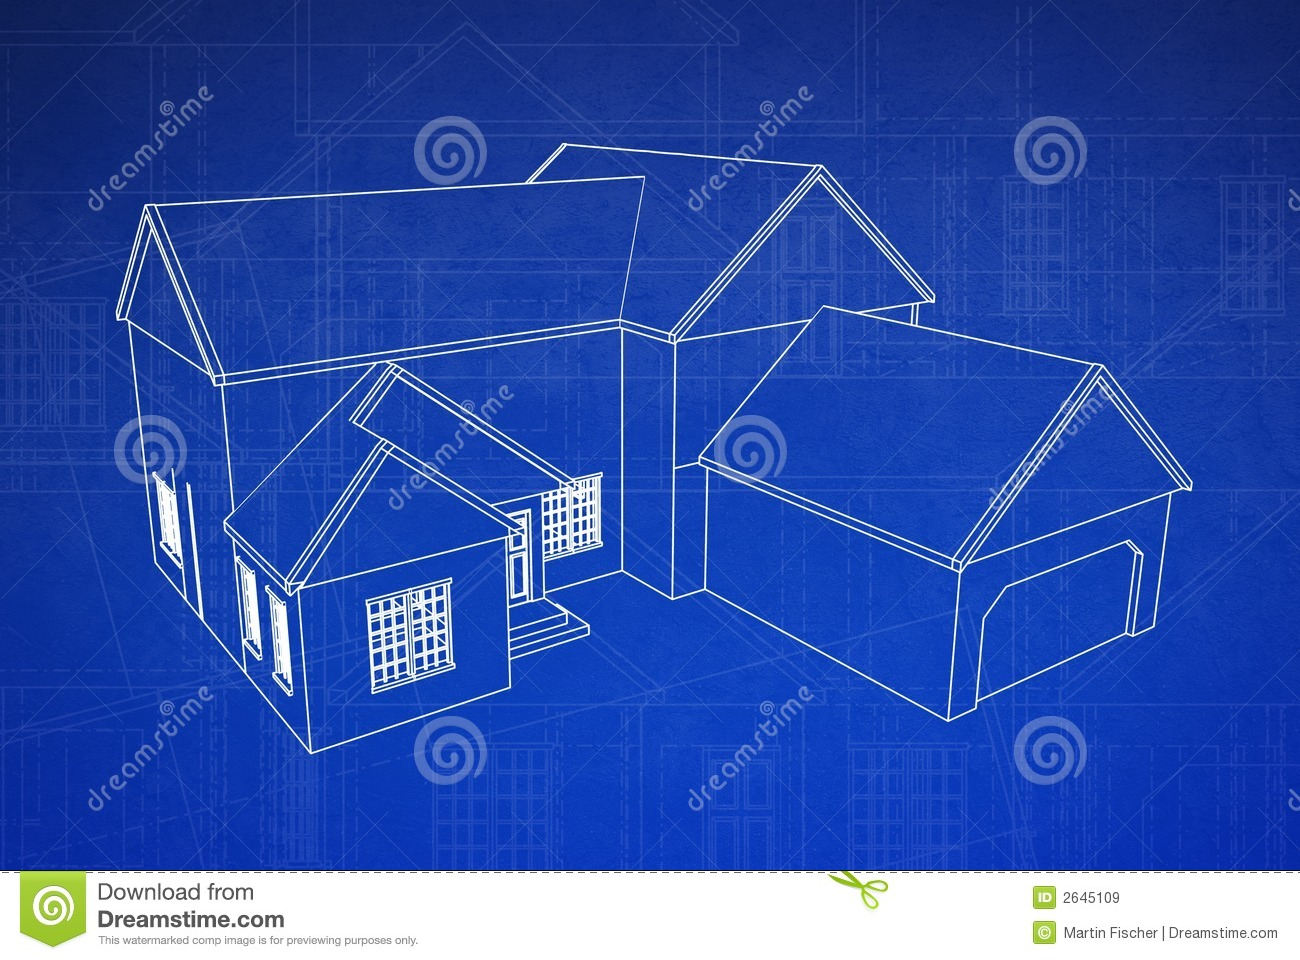 Strange 3D House Blueprint Royalty Free Stock Images Image 2645109 Largest Home Design Picture Inspirations Pitcheantrous